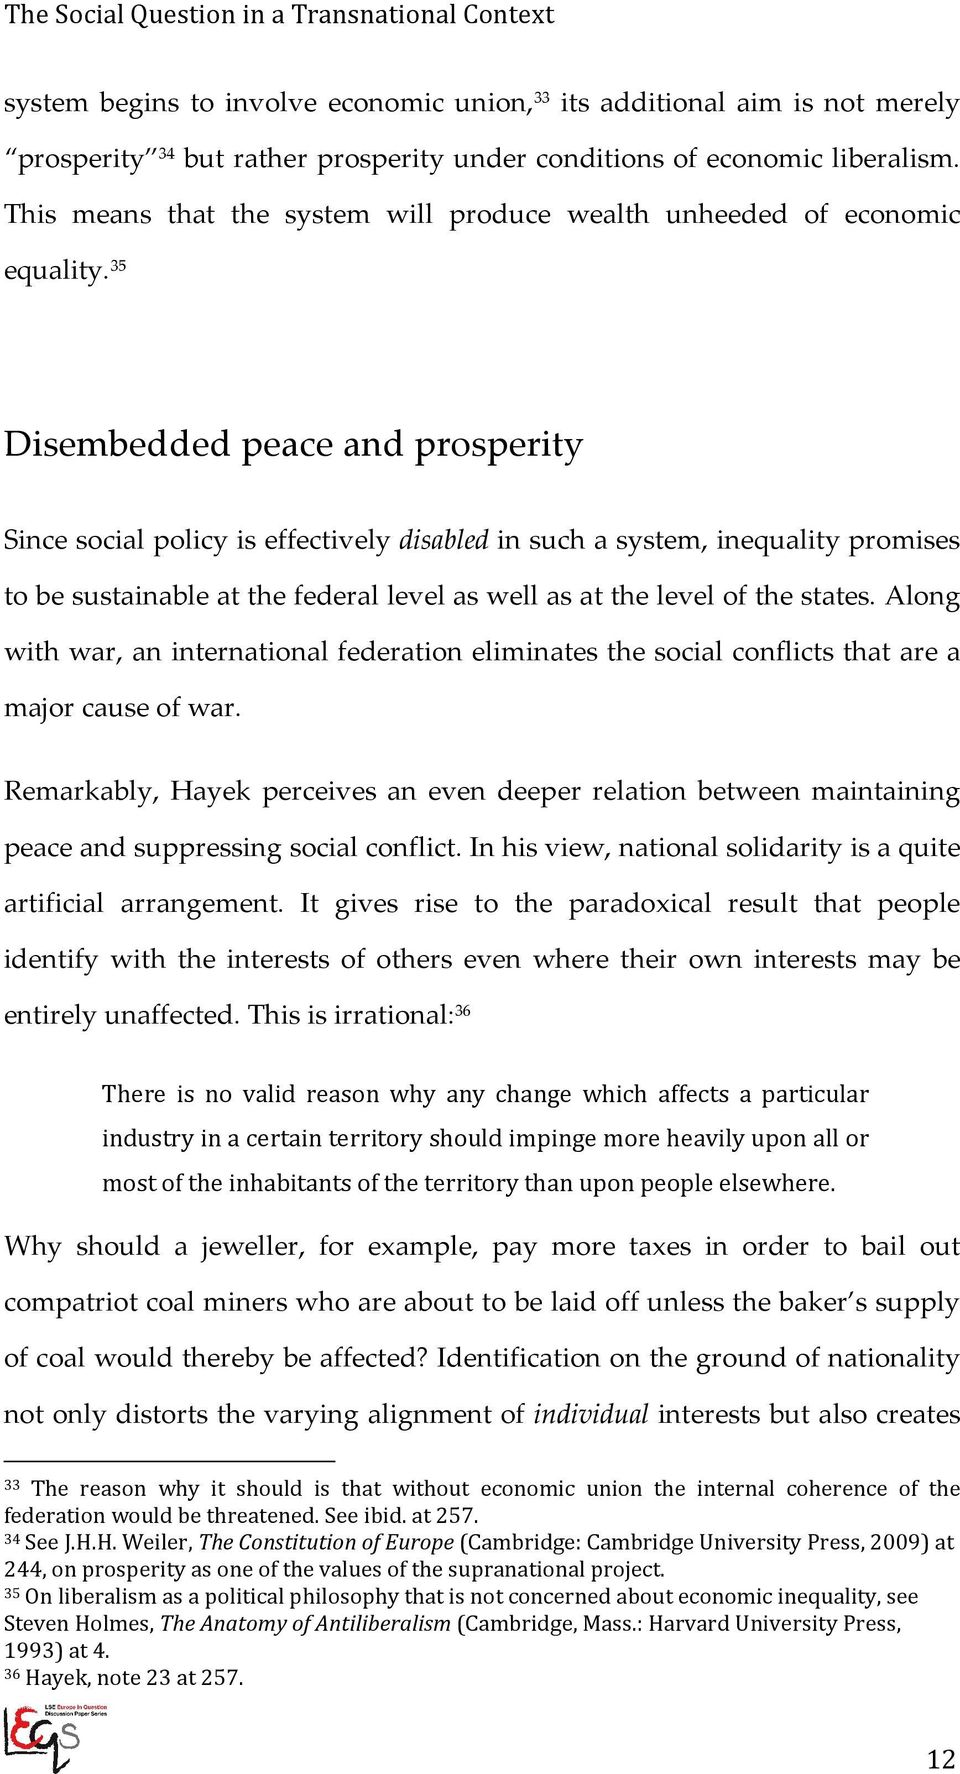 35 Disembedded peace and prosperity Since social policy is effectively disabled in such a system, inequality promises to be sustainable at the federal level as well as at the level of the states.